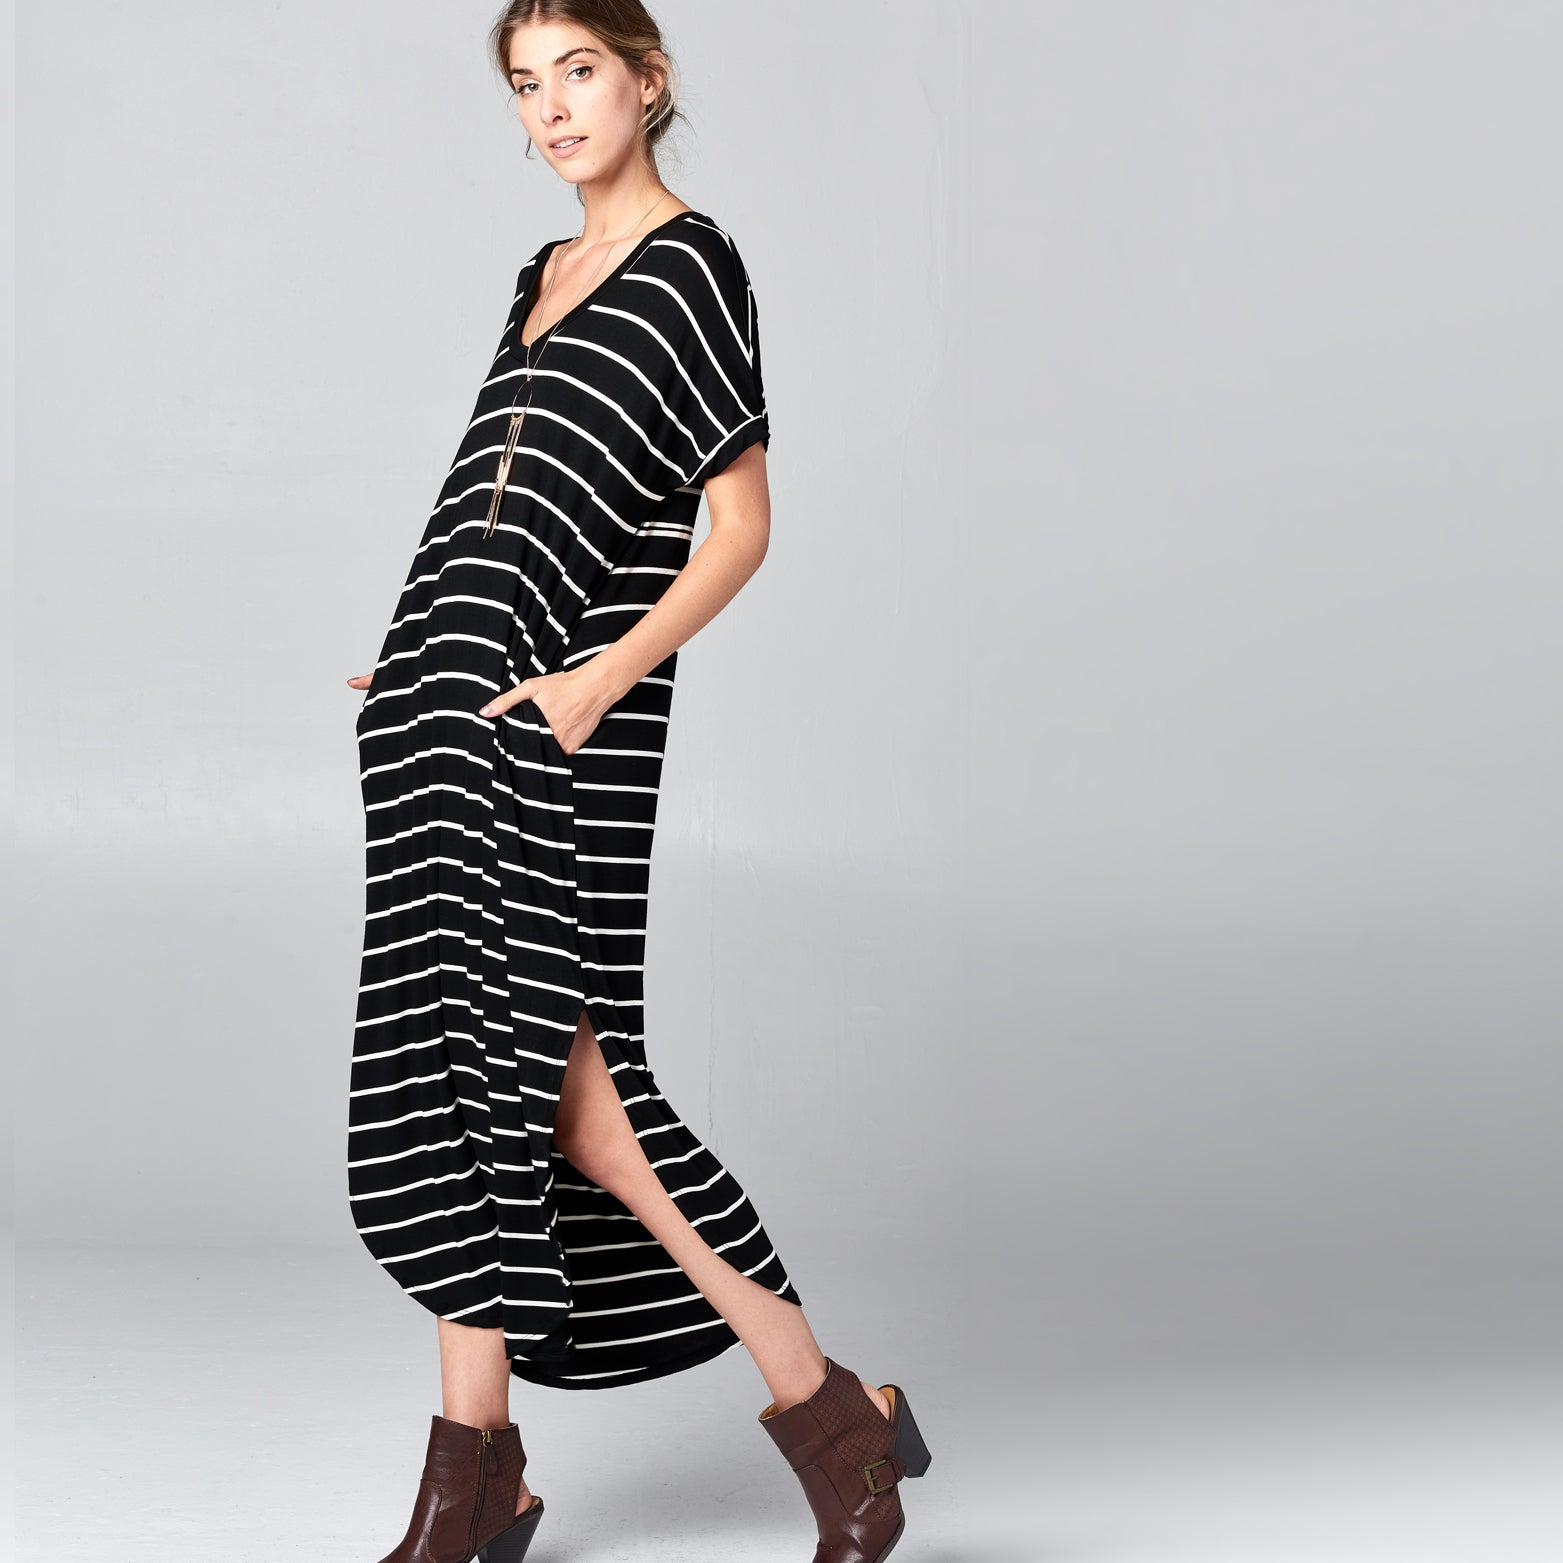 RL Black White Striped Maxi Dress - Love, Kuza